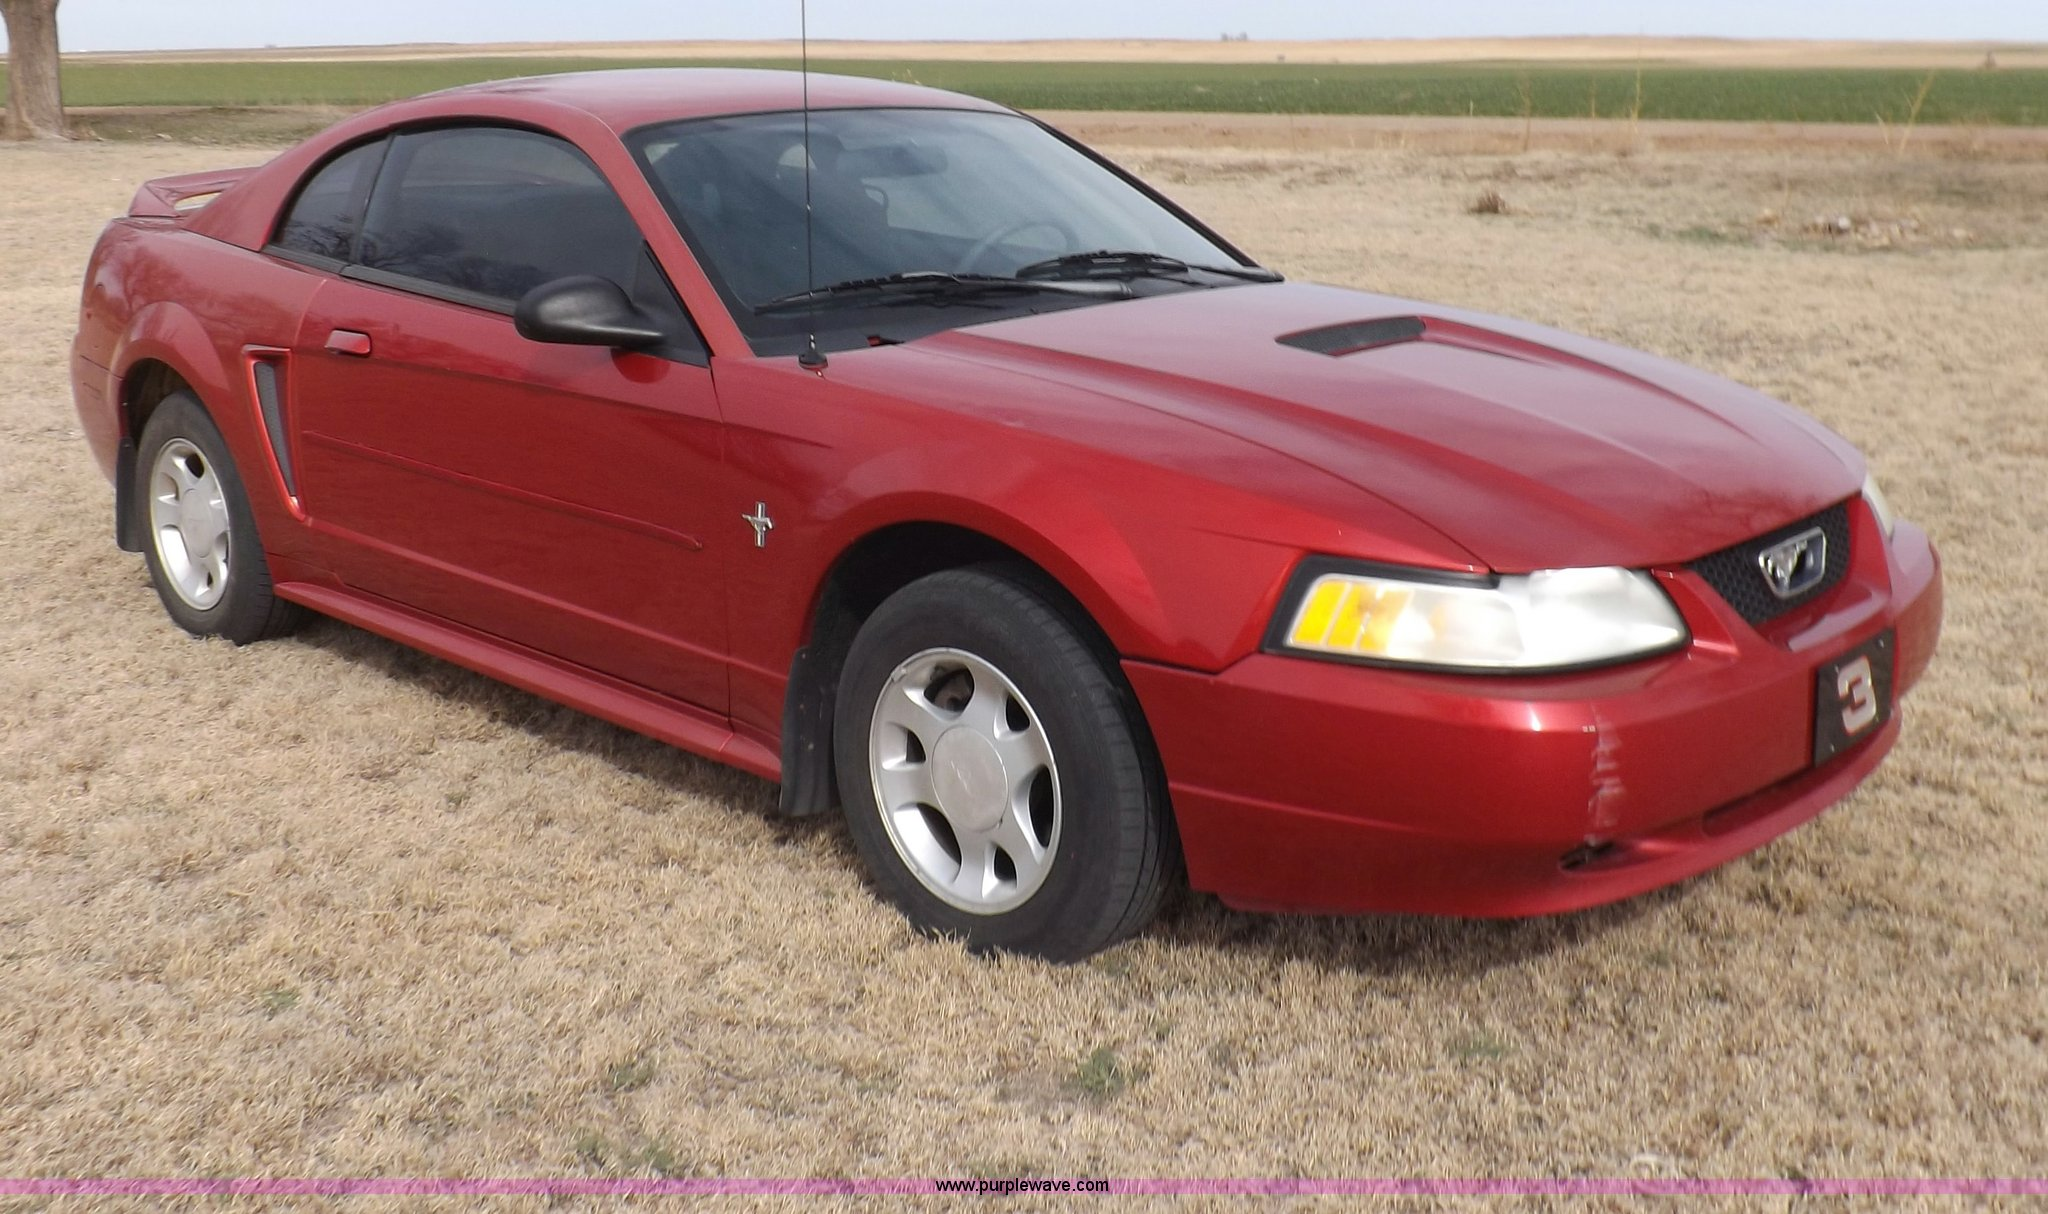 2000 ford mustang item i9033 sold april 16 vehicles. Black Bedroom Furniture Sets. Home Design Ideas